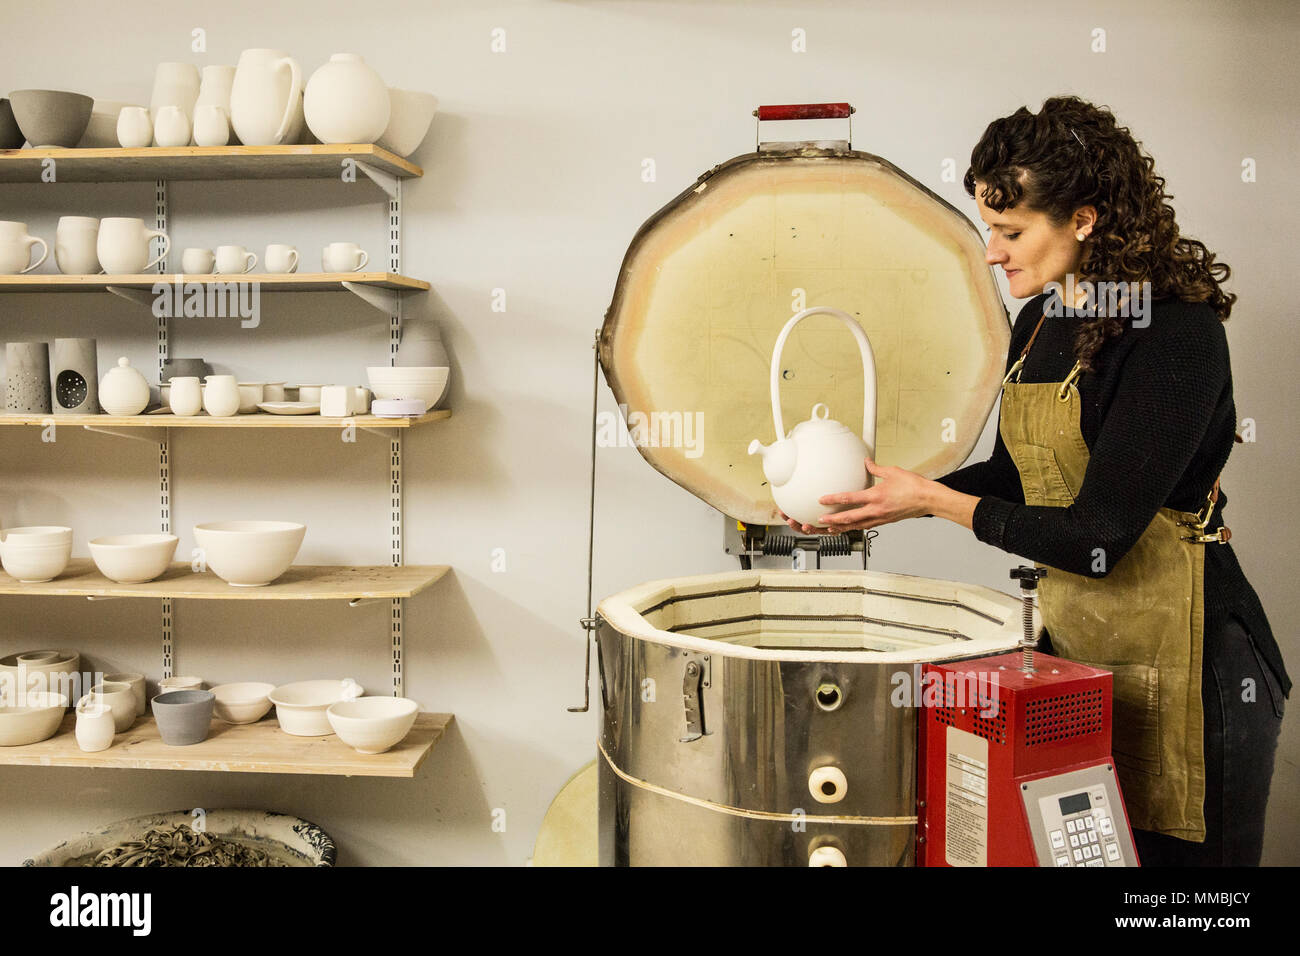 Woman with curly brown hair wearing apron standing in pottery workshop, placing vase into kiln. - Stock Image